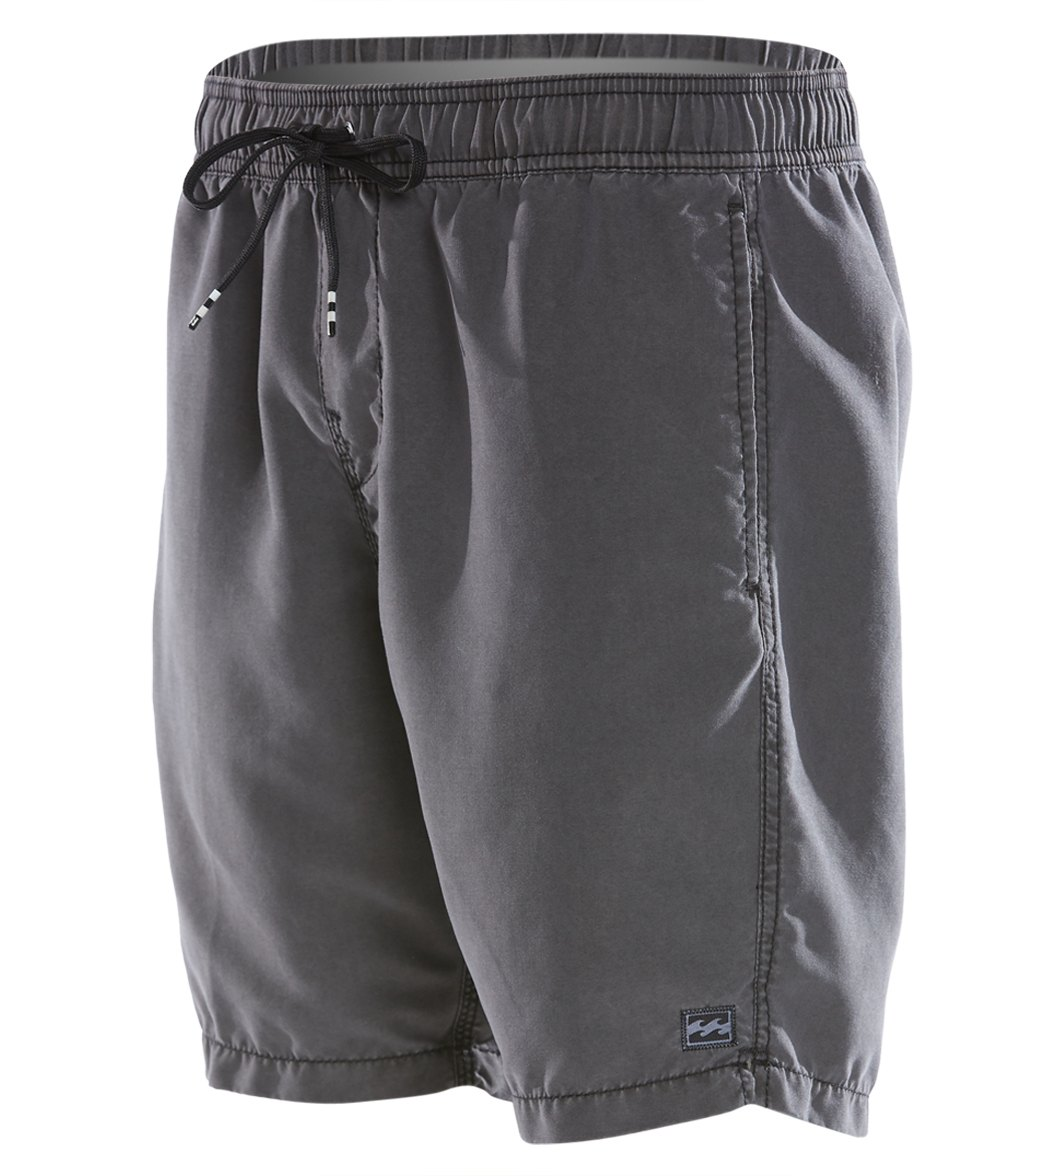 0aa1c4e3d1 Billabong Men's All Day Layback Swim Trunk at SwimOutlet.com - Free Shipping